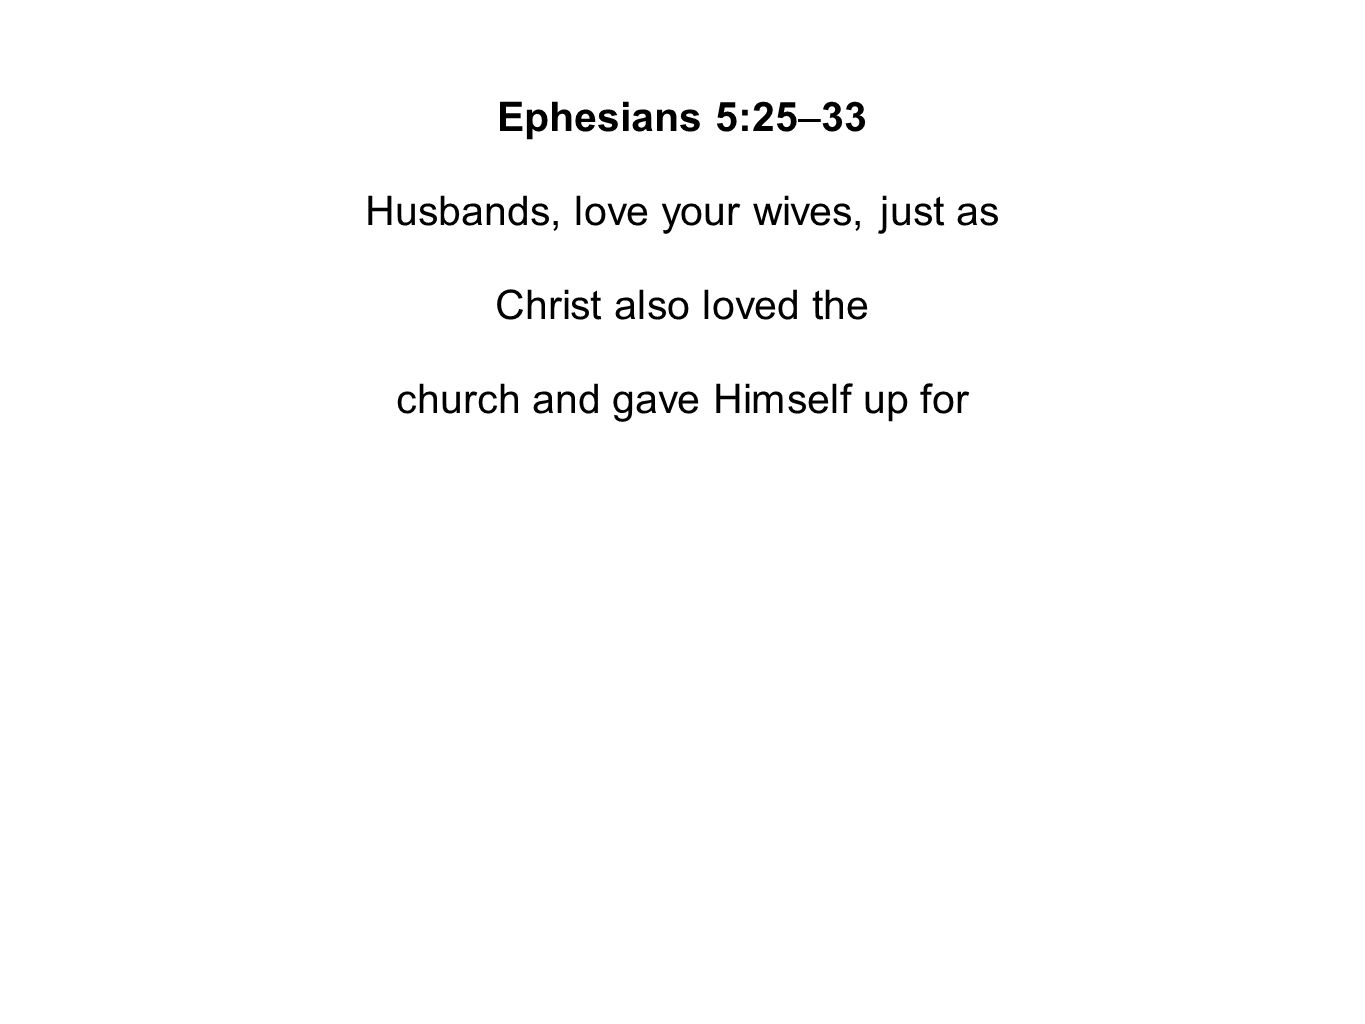 Ephesians 5:25–33 Husbands, love your wives, just as Christ also loved the church and gave Himself up for her, so that He might sanctify her, having